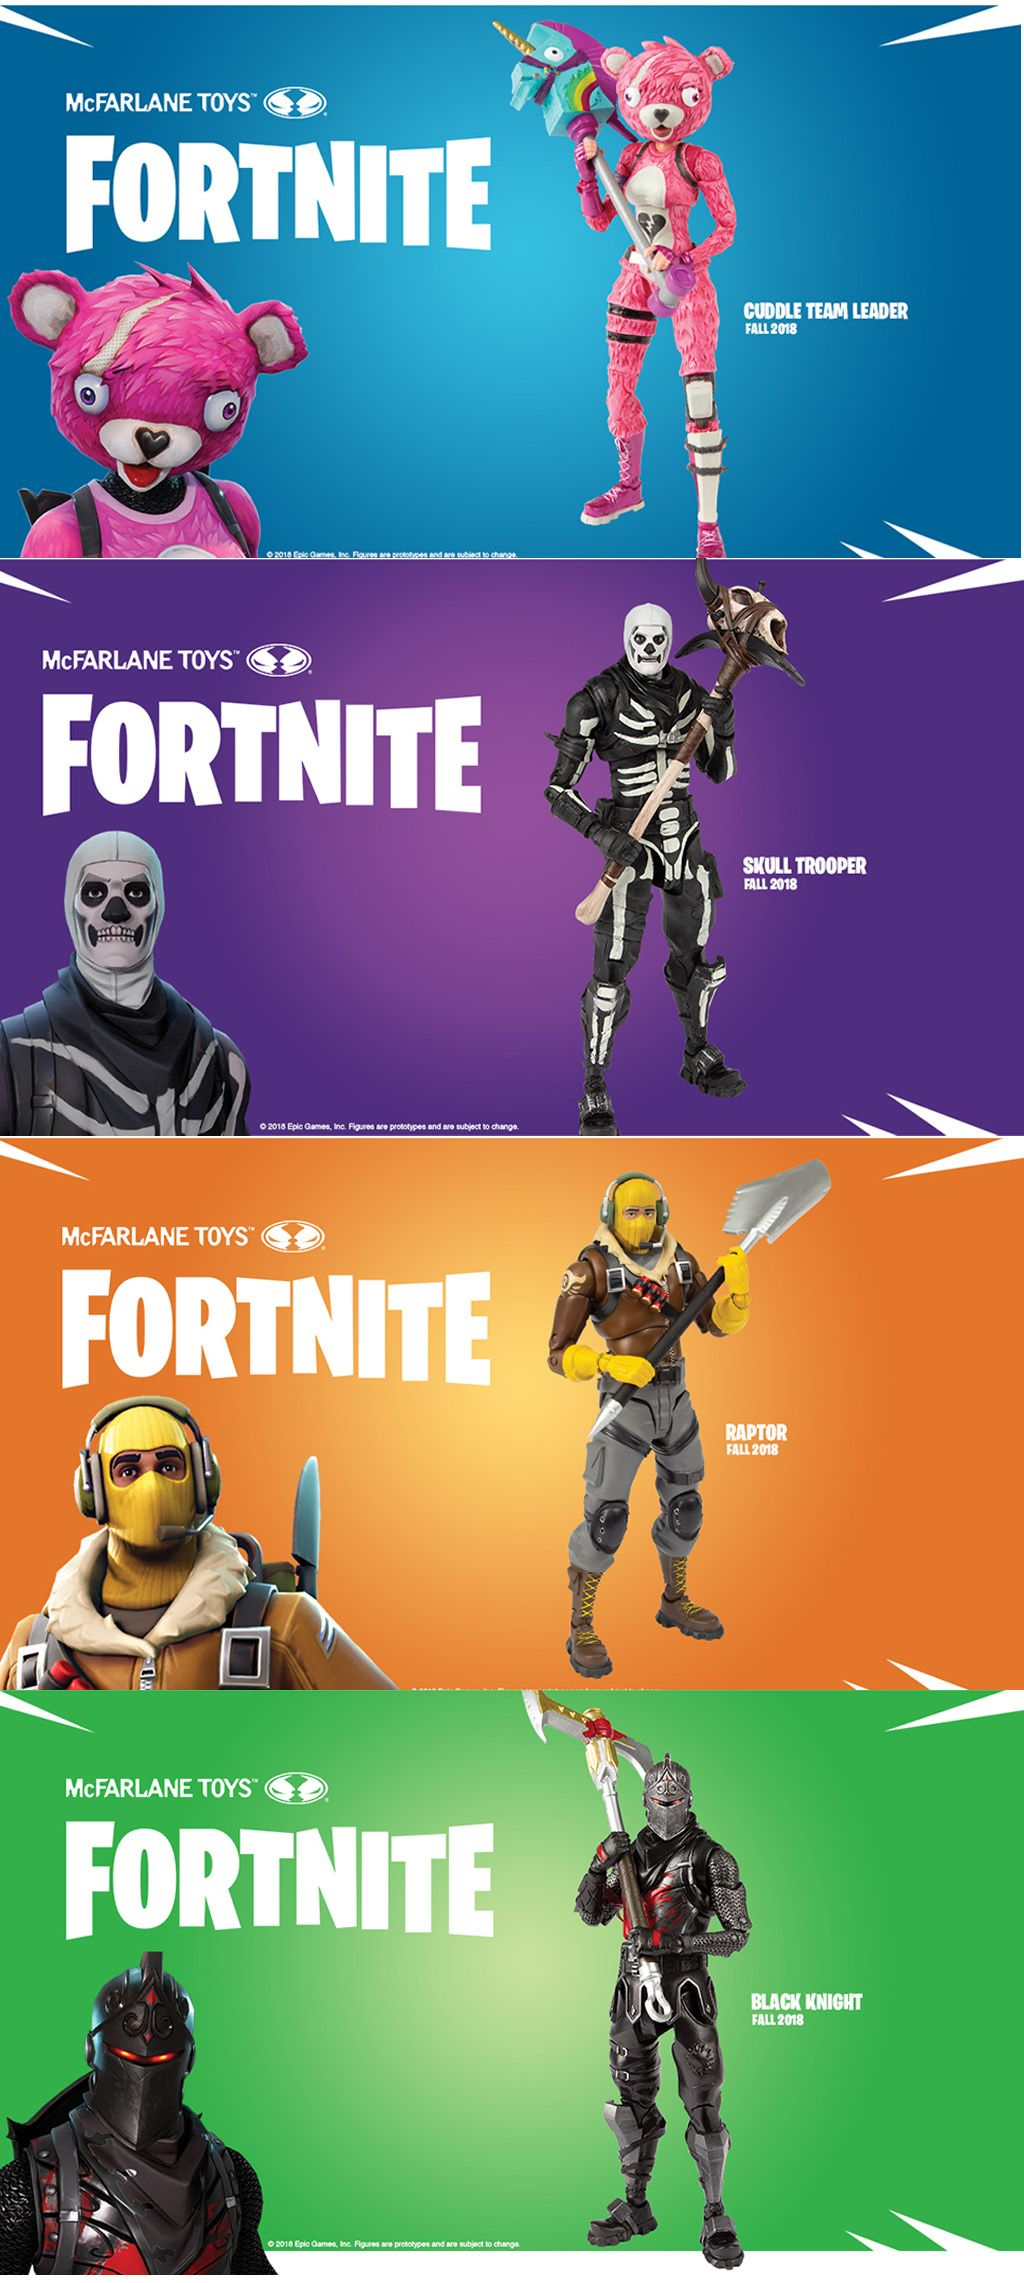 Fortnite Action Figure Preorders Are Up Featuring 7 Inches Tall And